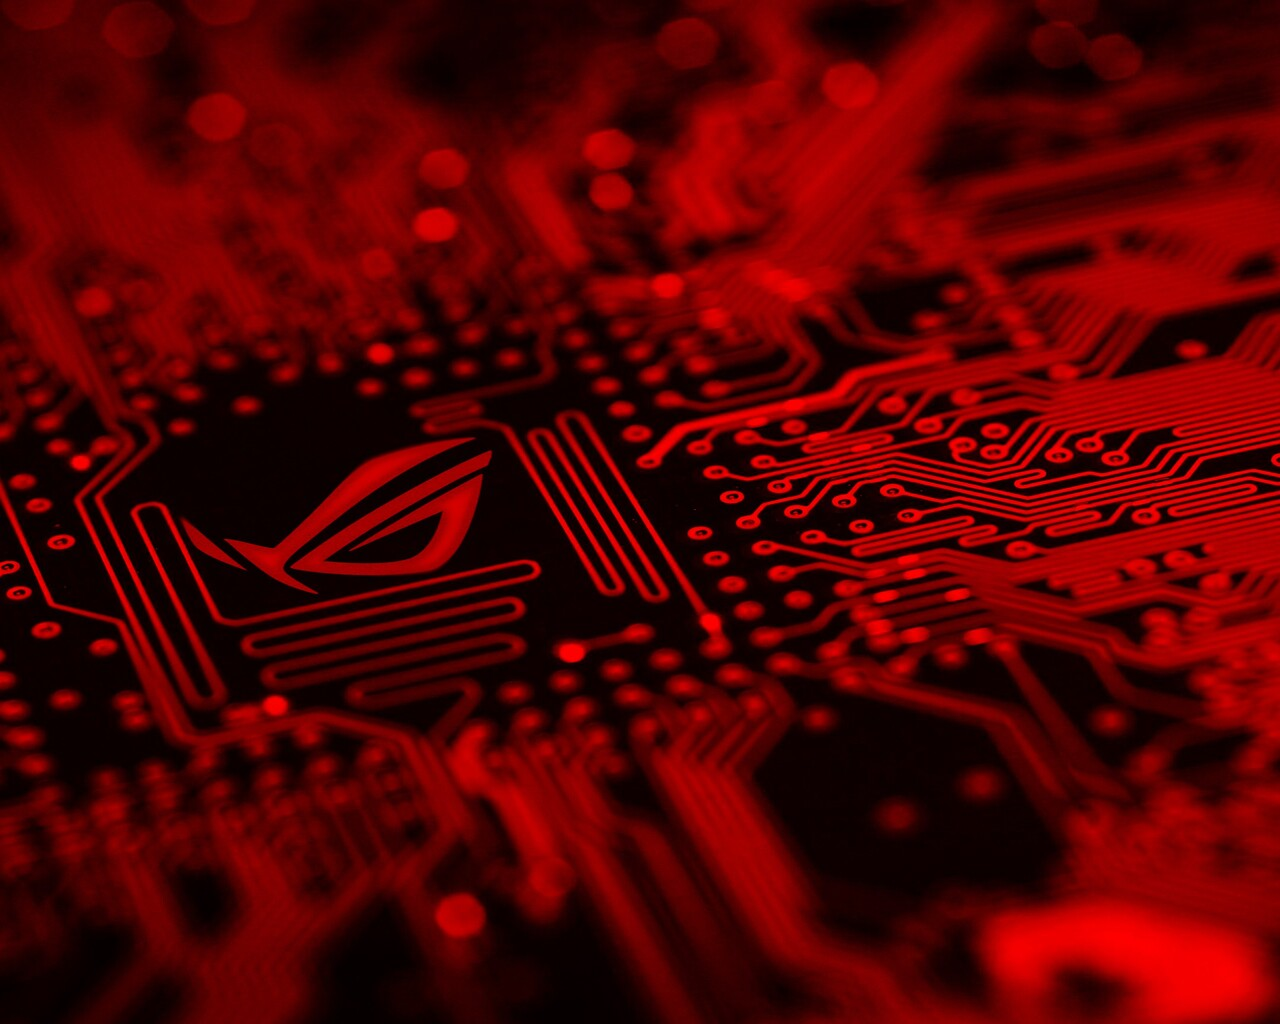 1280x1024 Republic Of Gamers Motherboard Red Background Logo 4k 1280x1024 Resolution HD 4k ...